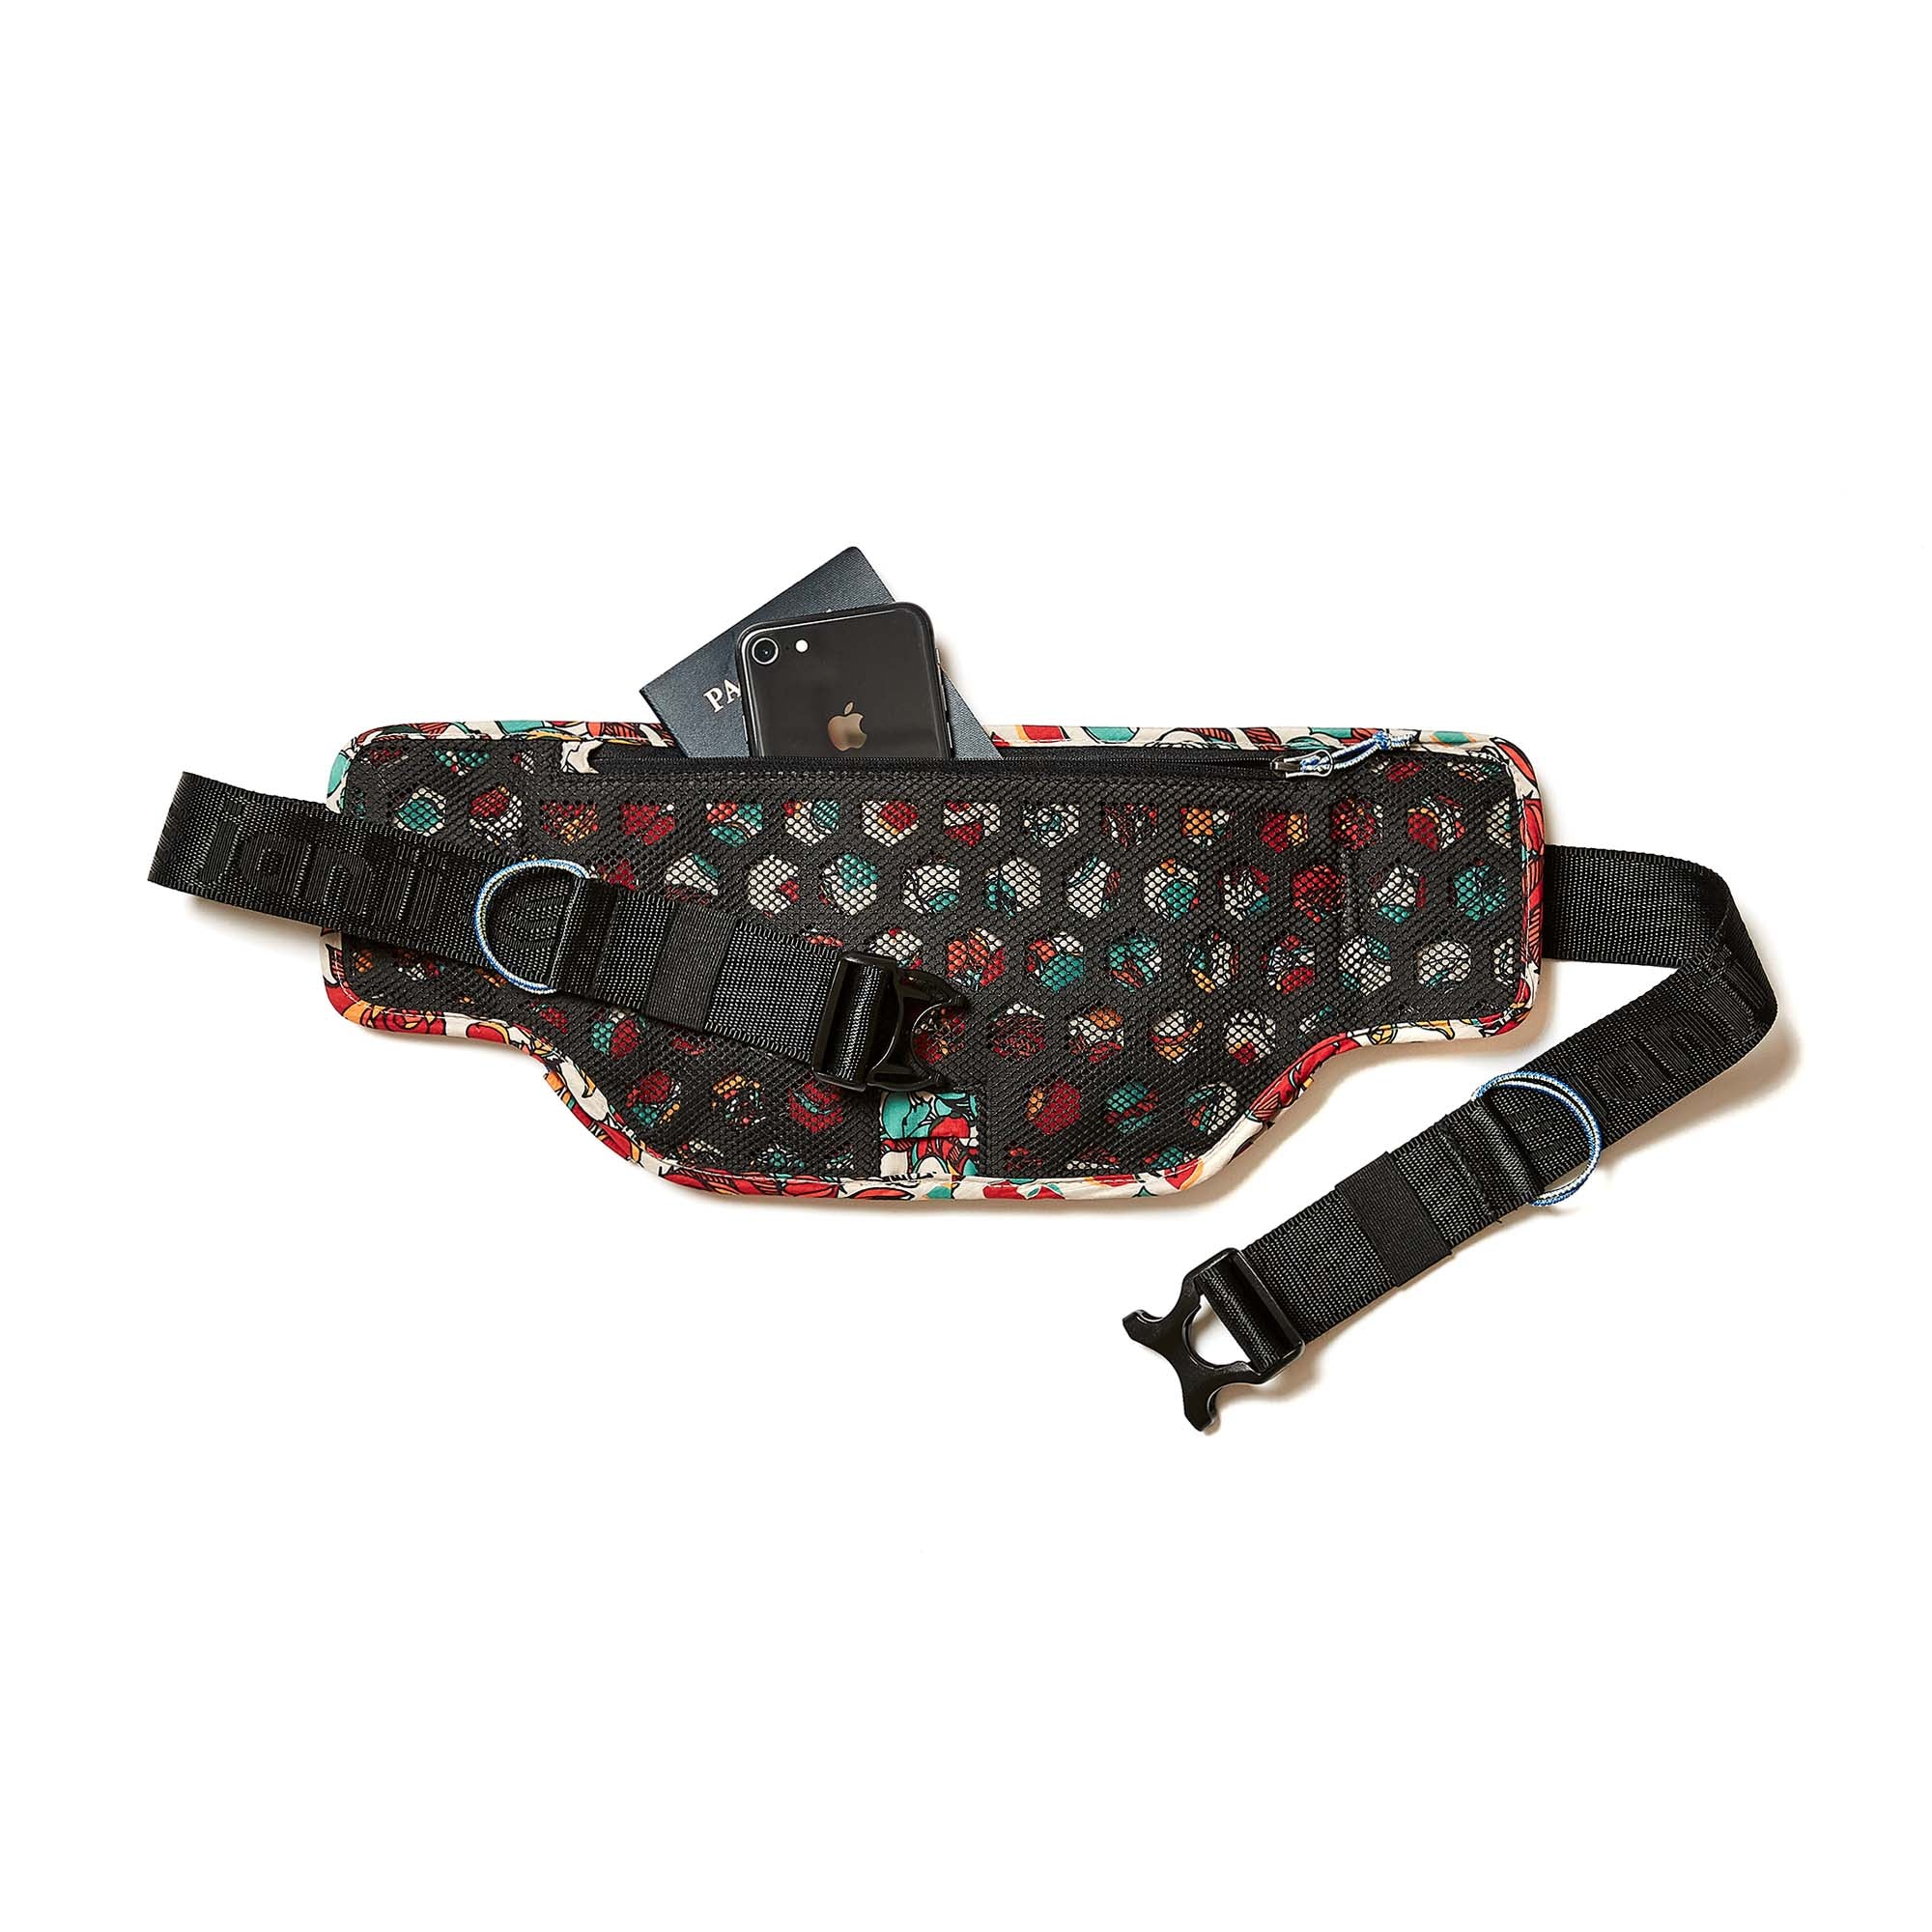 Multipass Sling Bag in Floral Camo